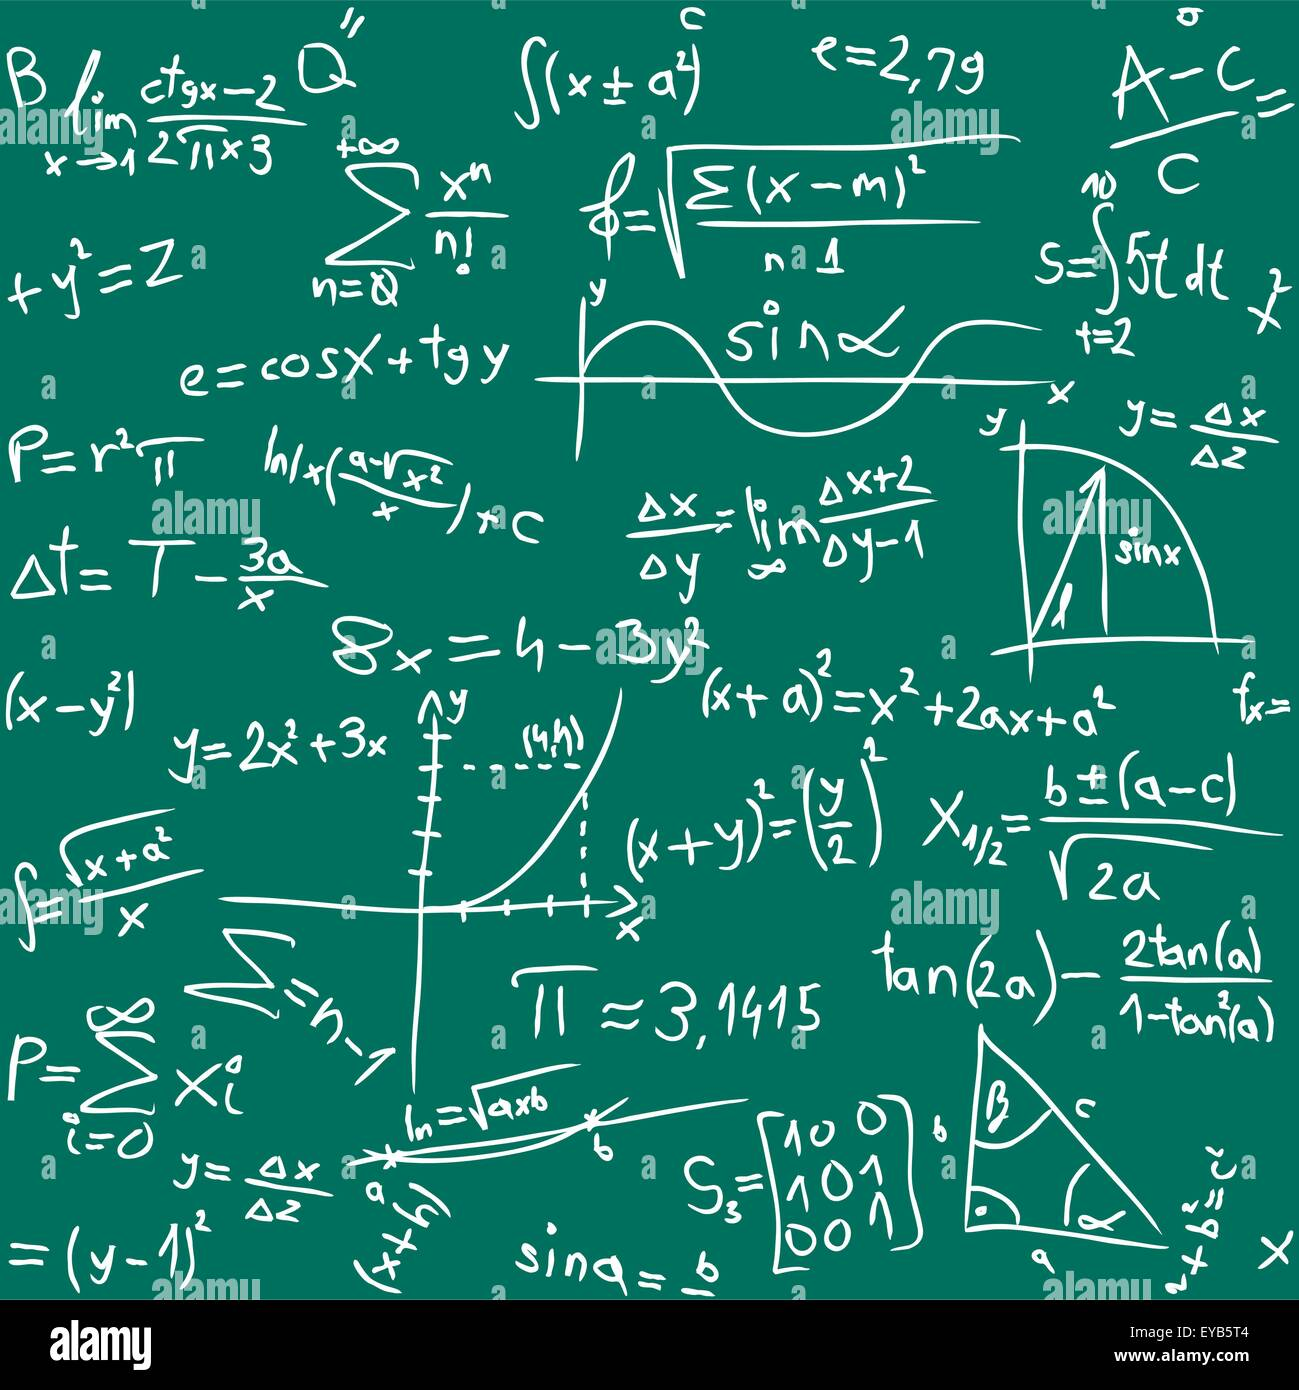 Math Calculation Board Stock Photos & Math Calculation Board Stock ...